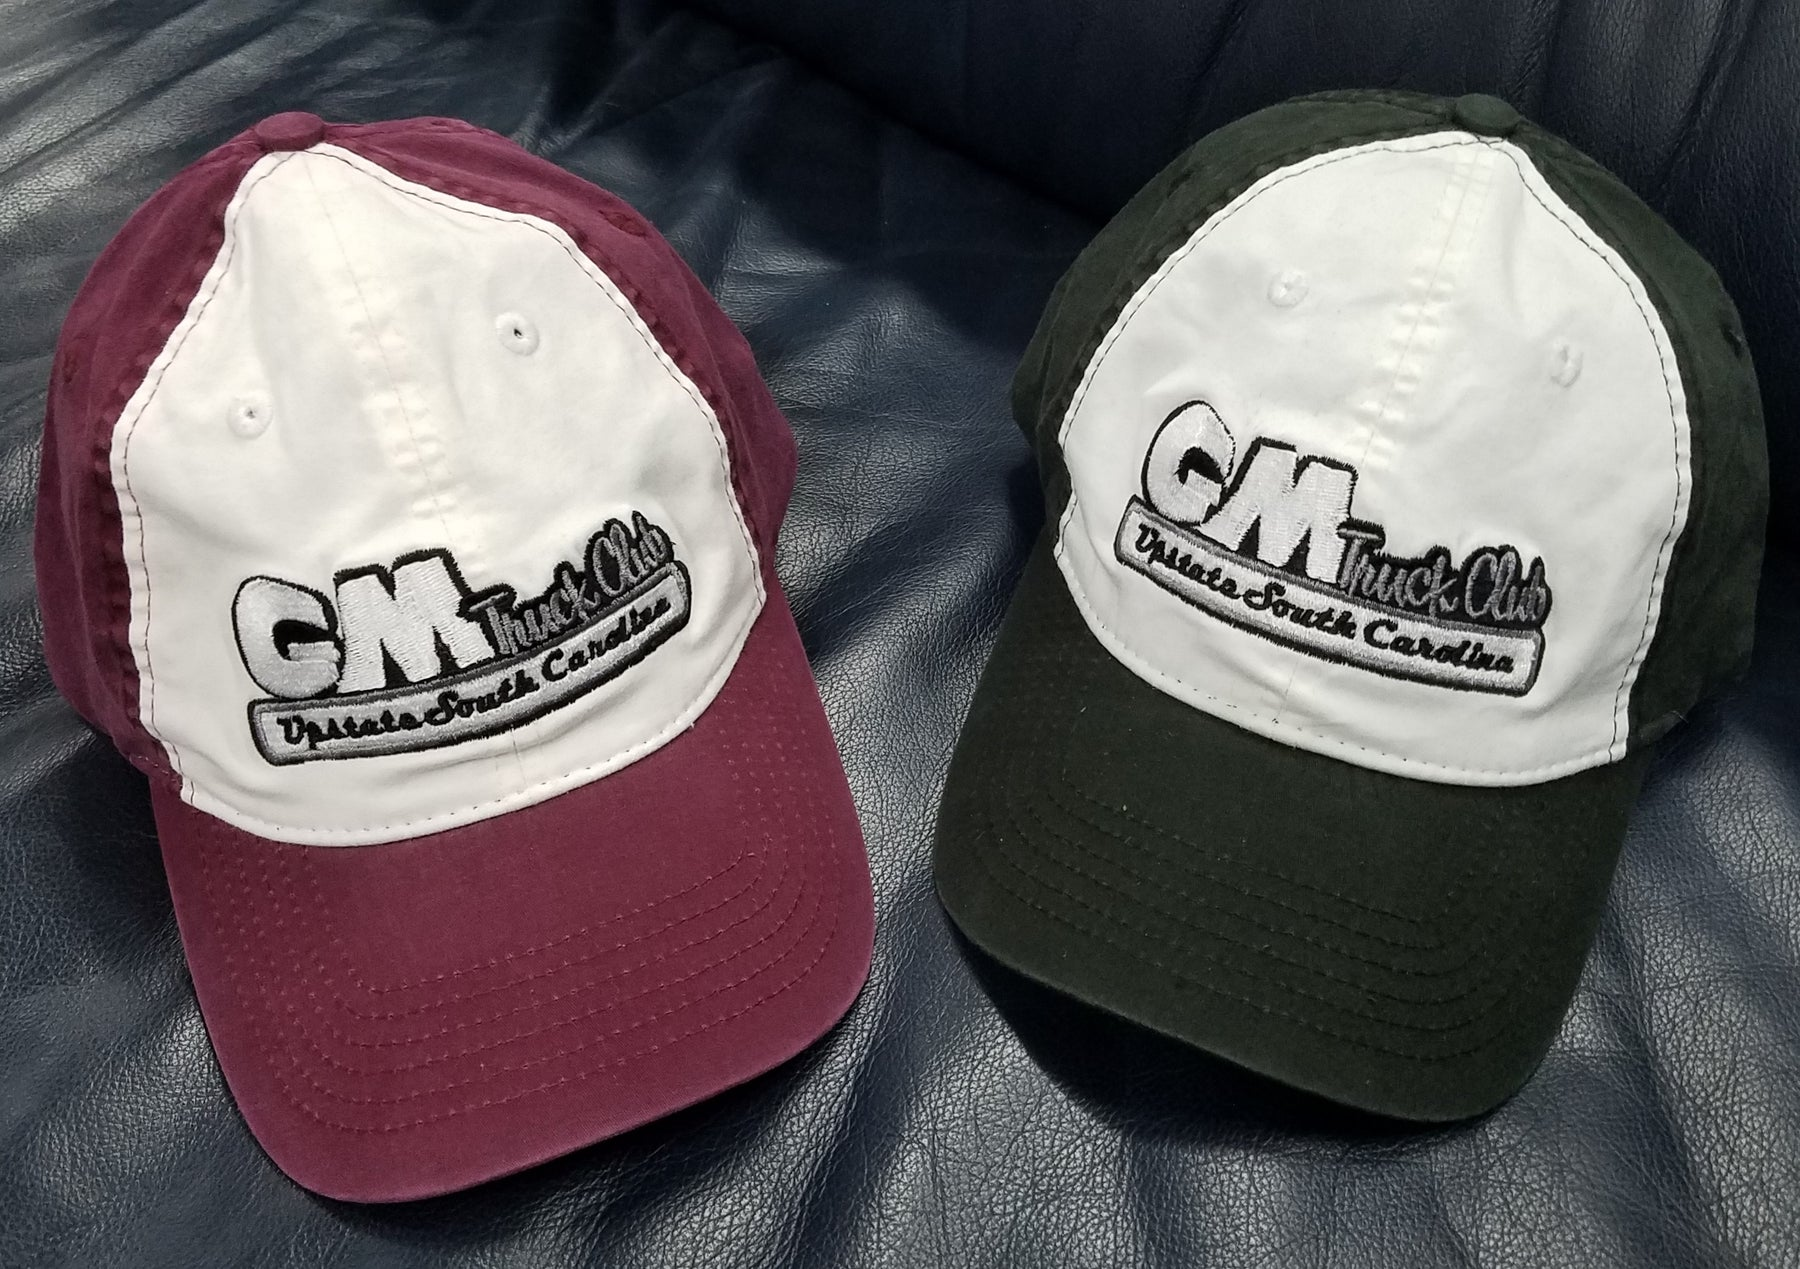 Upstate SC GM Truck Club Low Profile Hat